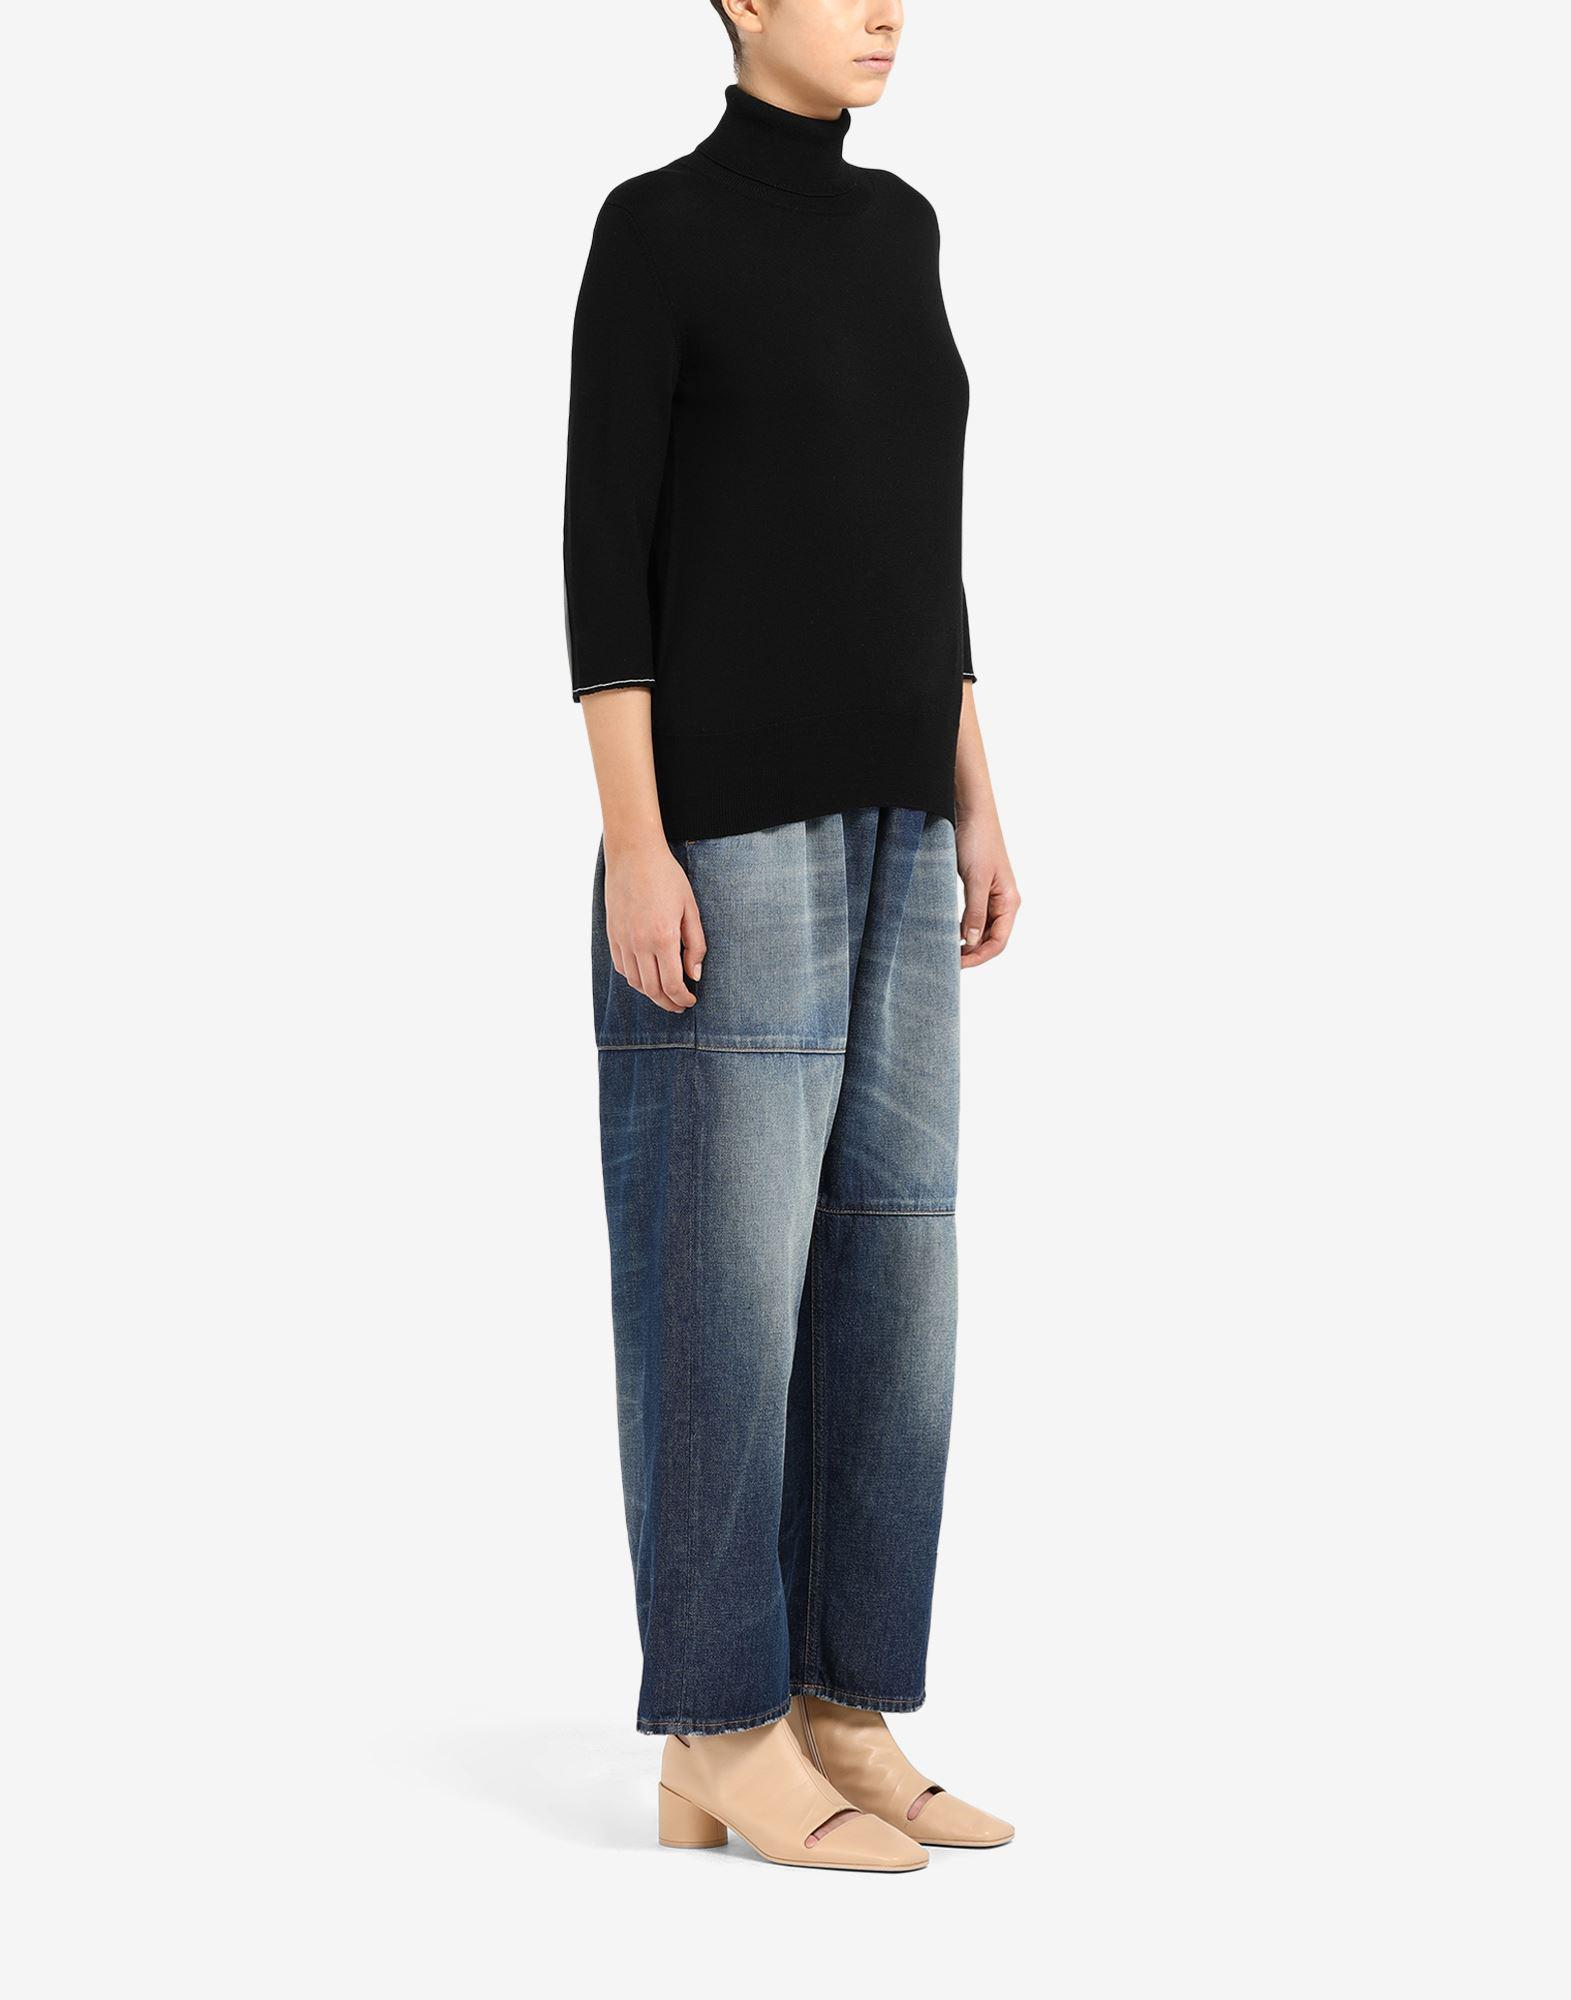 Cropped elbow patch sweater 1